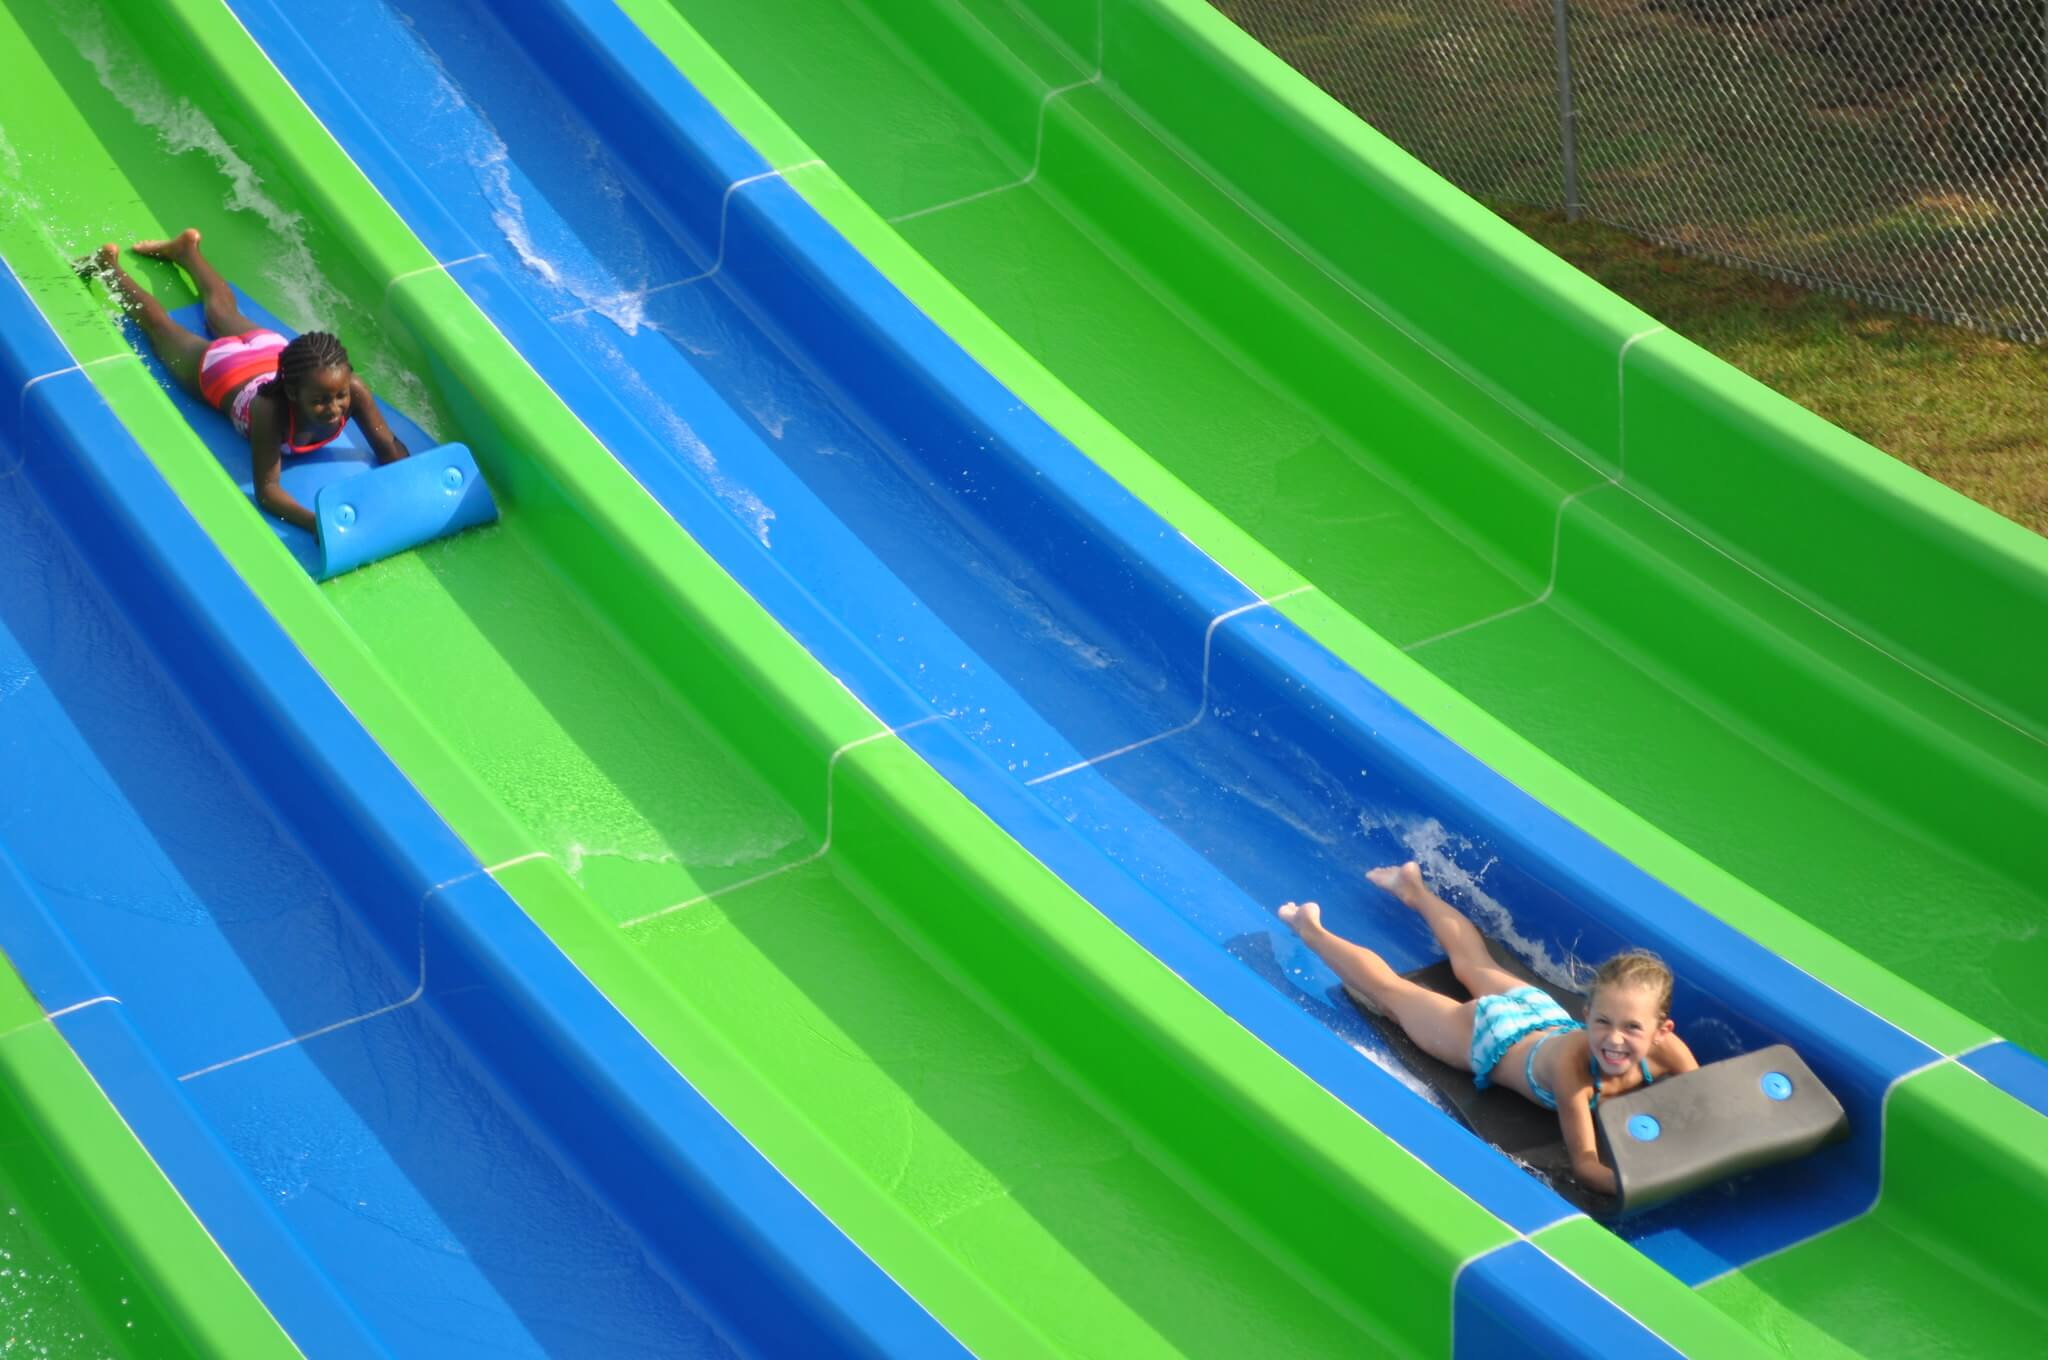 two kids sliding down a blue and green waterslide